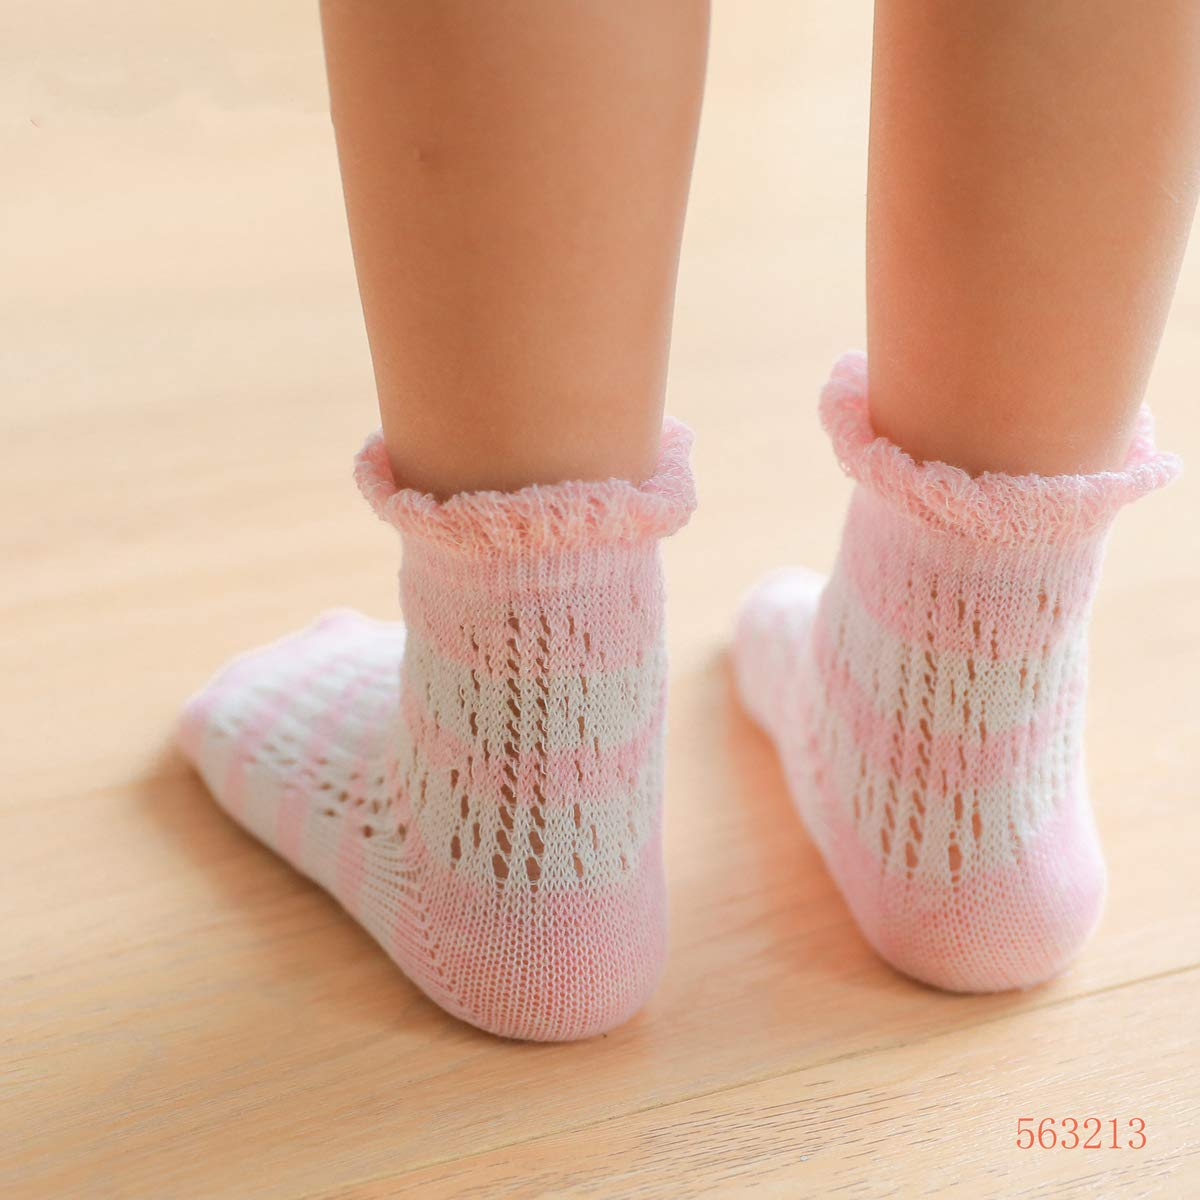 SKOLA Non Skid Anti Slip Crew Ankle Socks With Grips For Baby Toddlers Boys Girls 3 or 6 Pairs Unisex Kids Infants Cotton